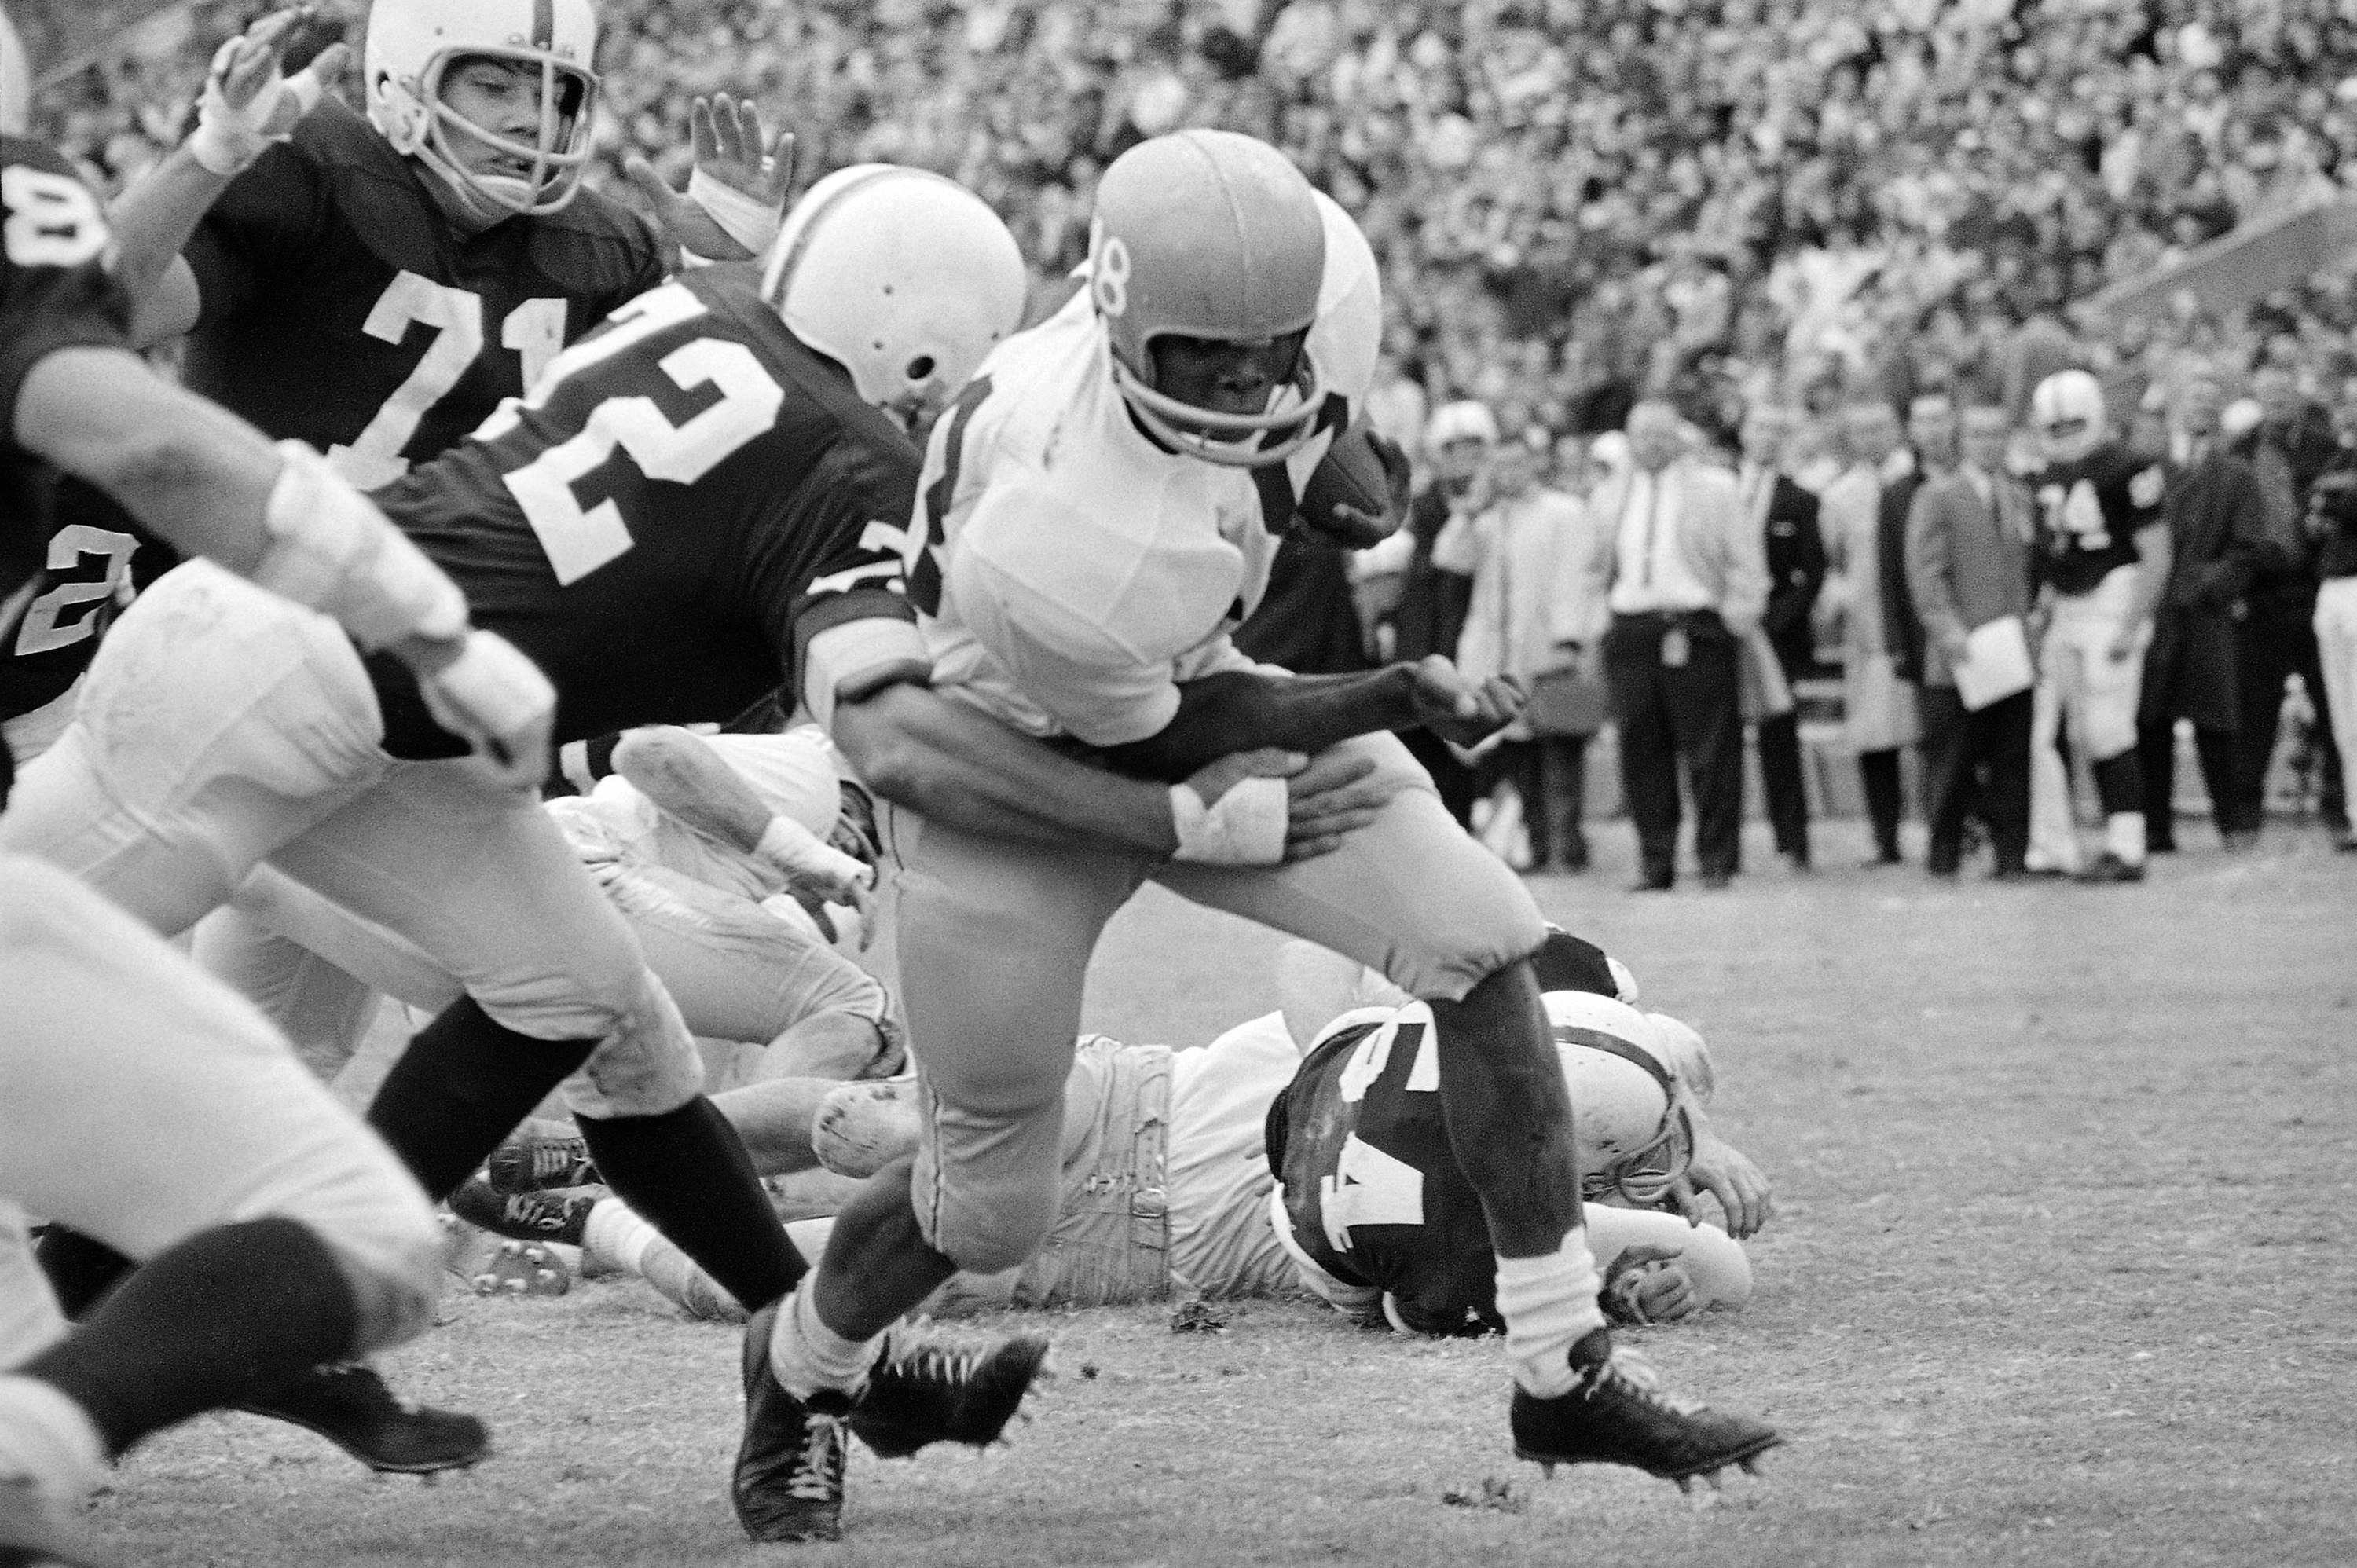 Kansas University's Gale Sayers scores for the Jayhawks in the first quarter of the Kansas-Kansas state game at Manhattan. At left, Kansas State's Ken Nash (72) moves in for the tackle. (AP Photo/William Straeter)